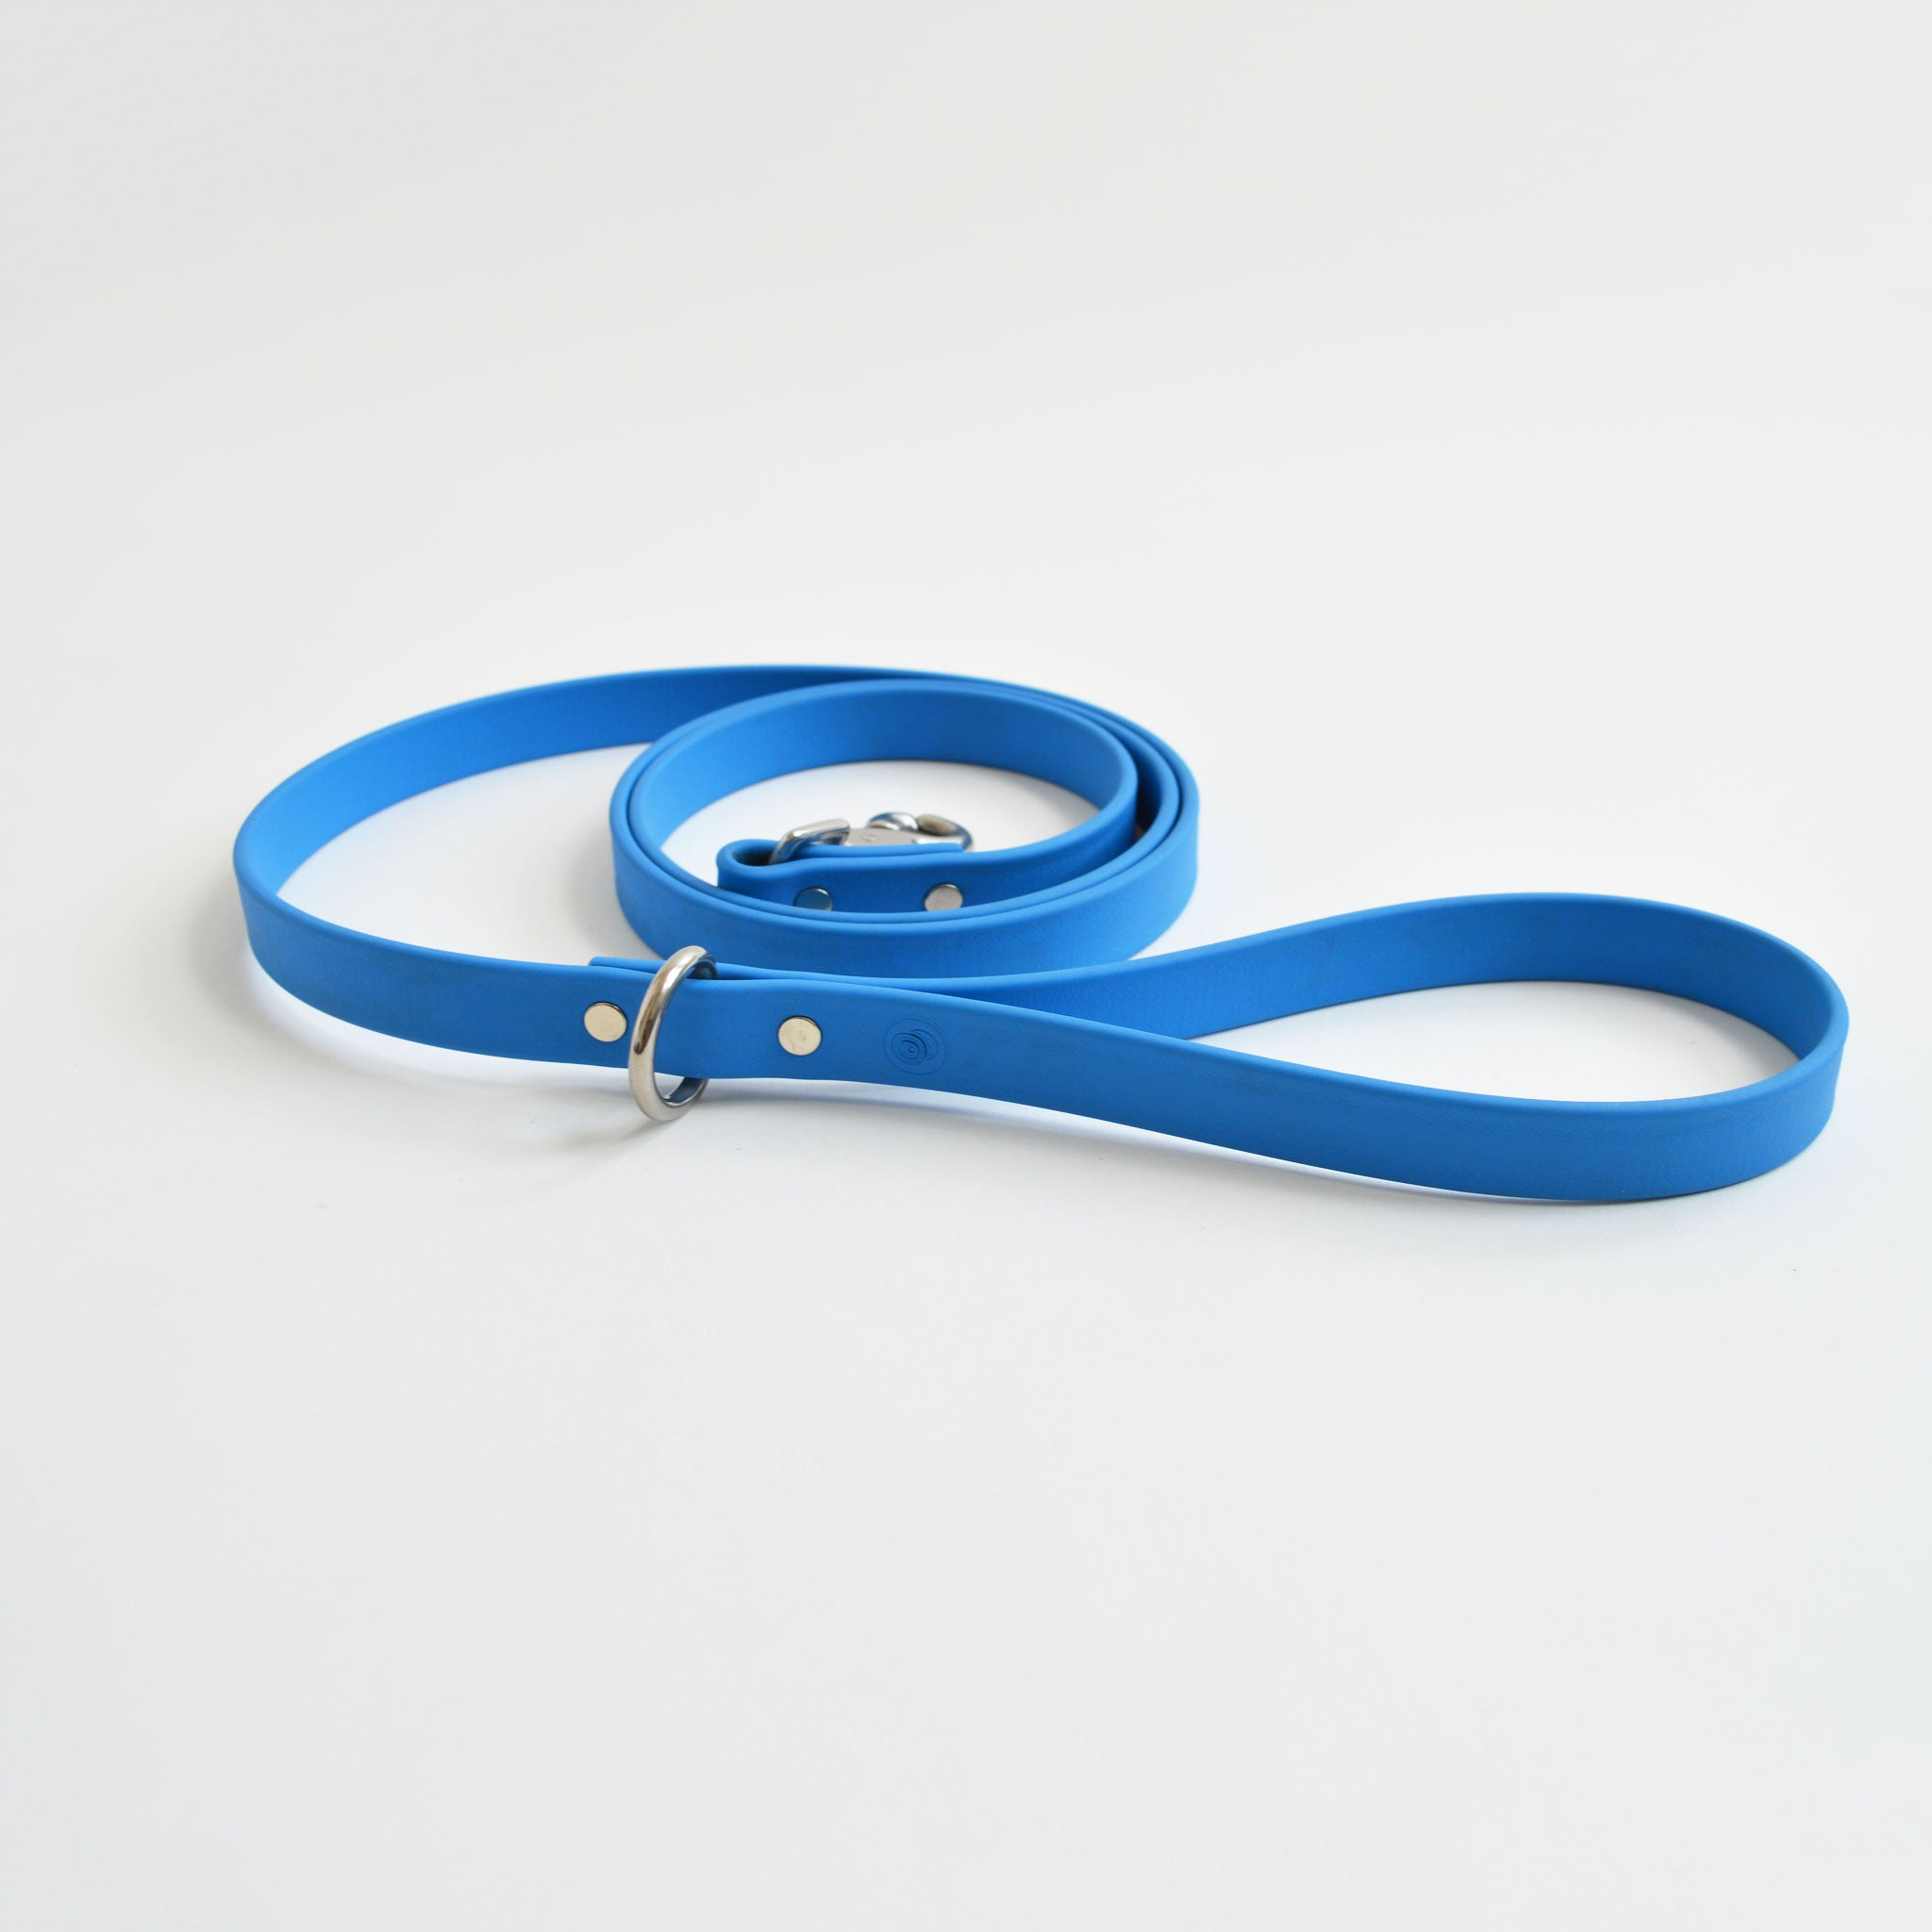 The Loop Leash